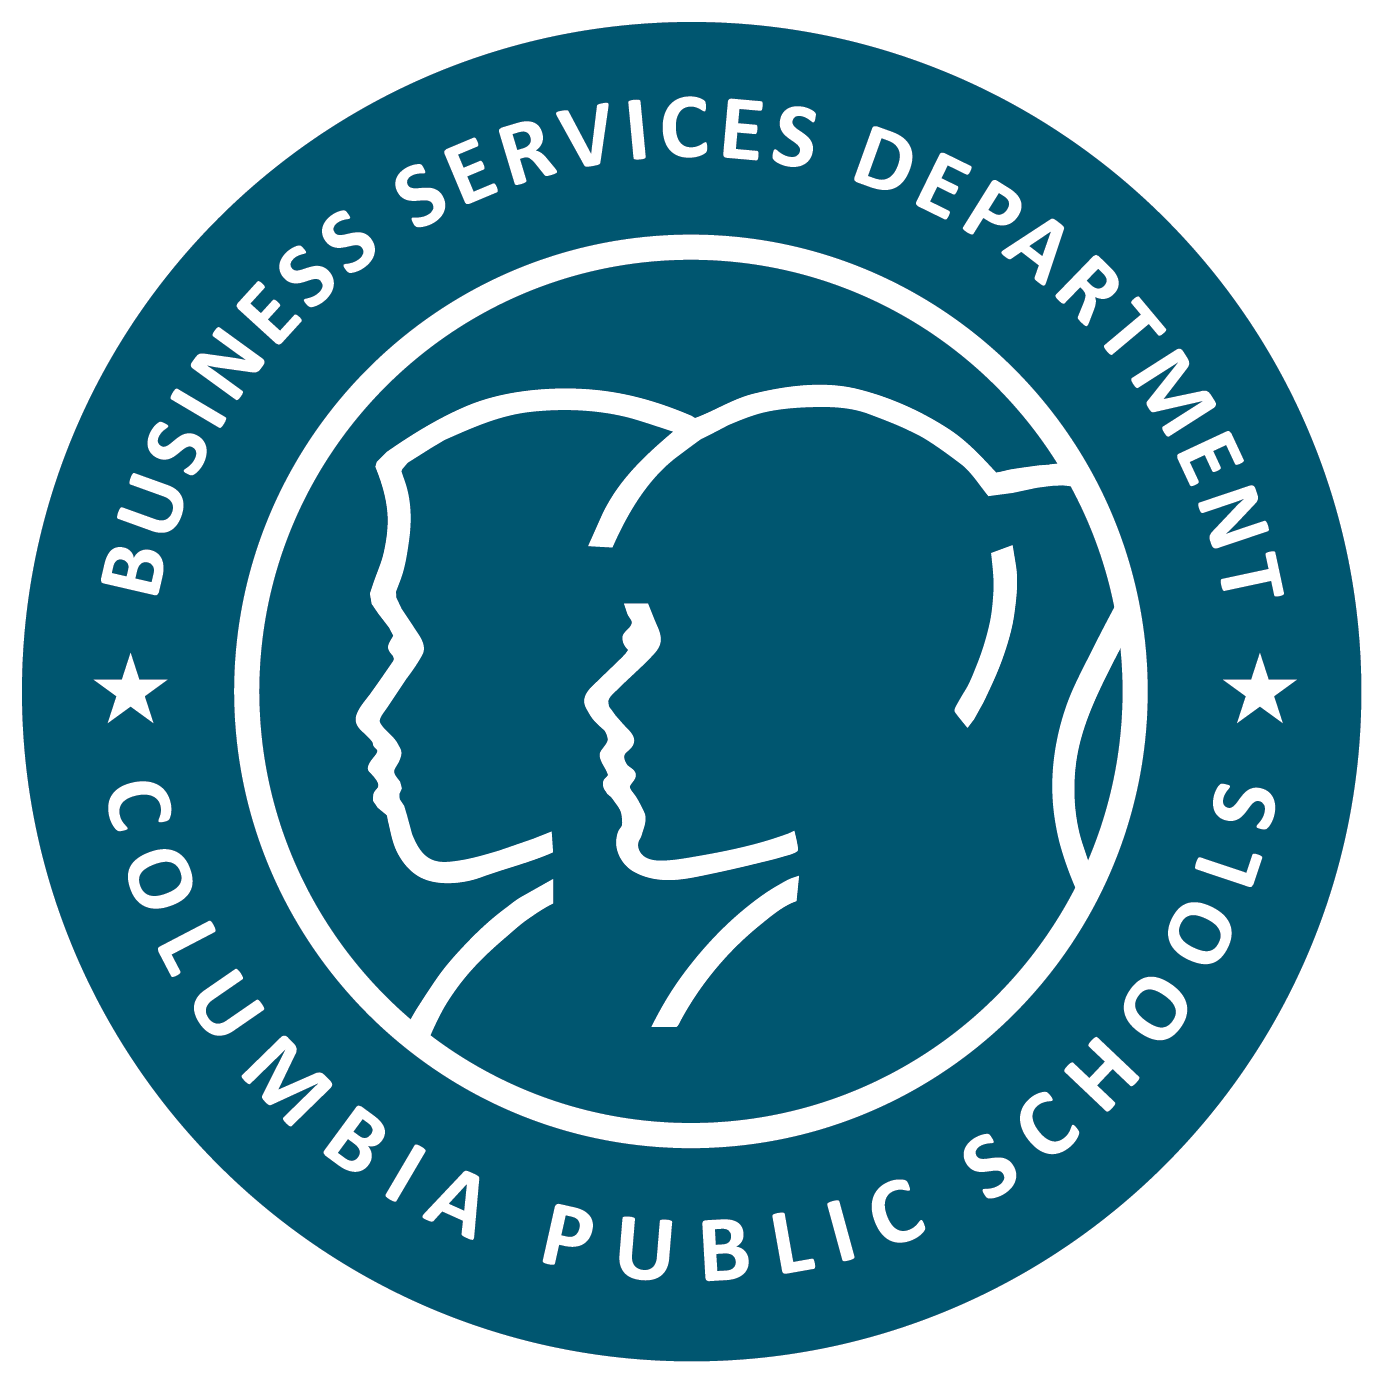 BusinessServicesDepartmentLogo